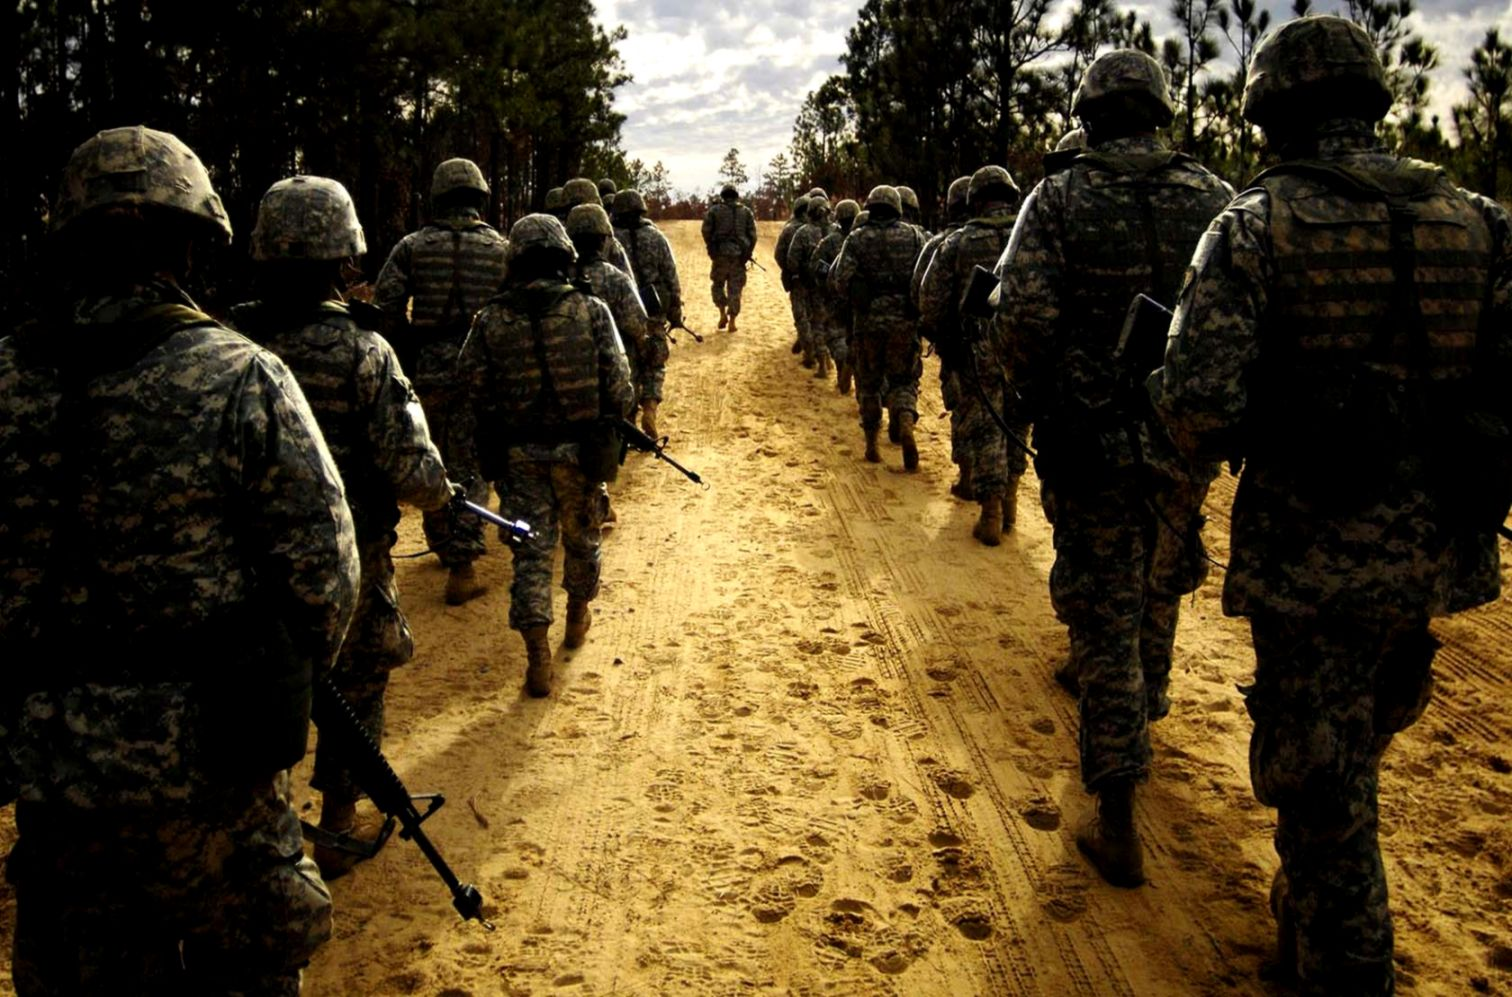 Us army wallpaper best wallpapers hd gallery view original size voltagebd Image collections